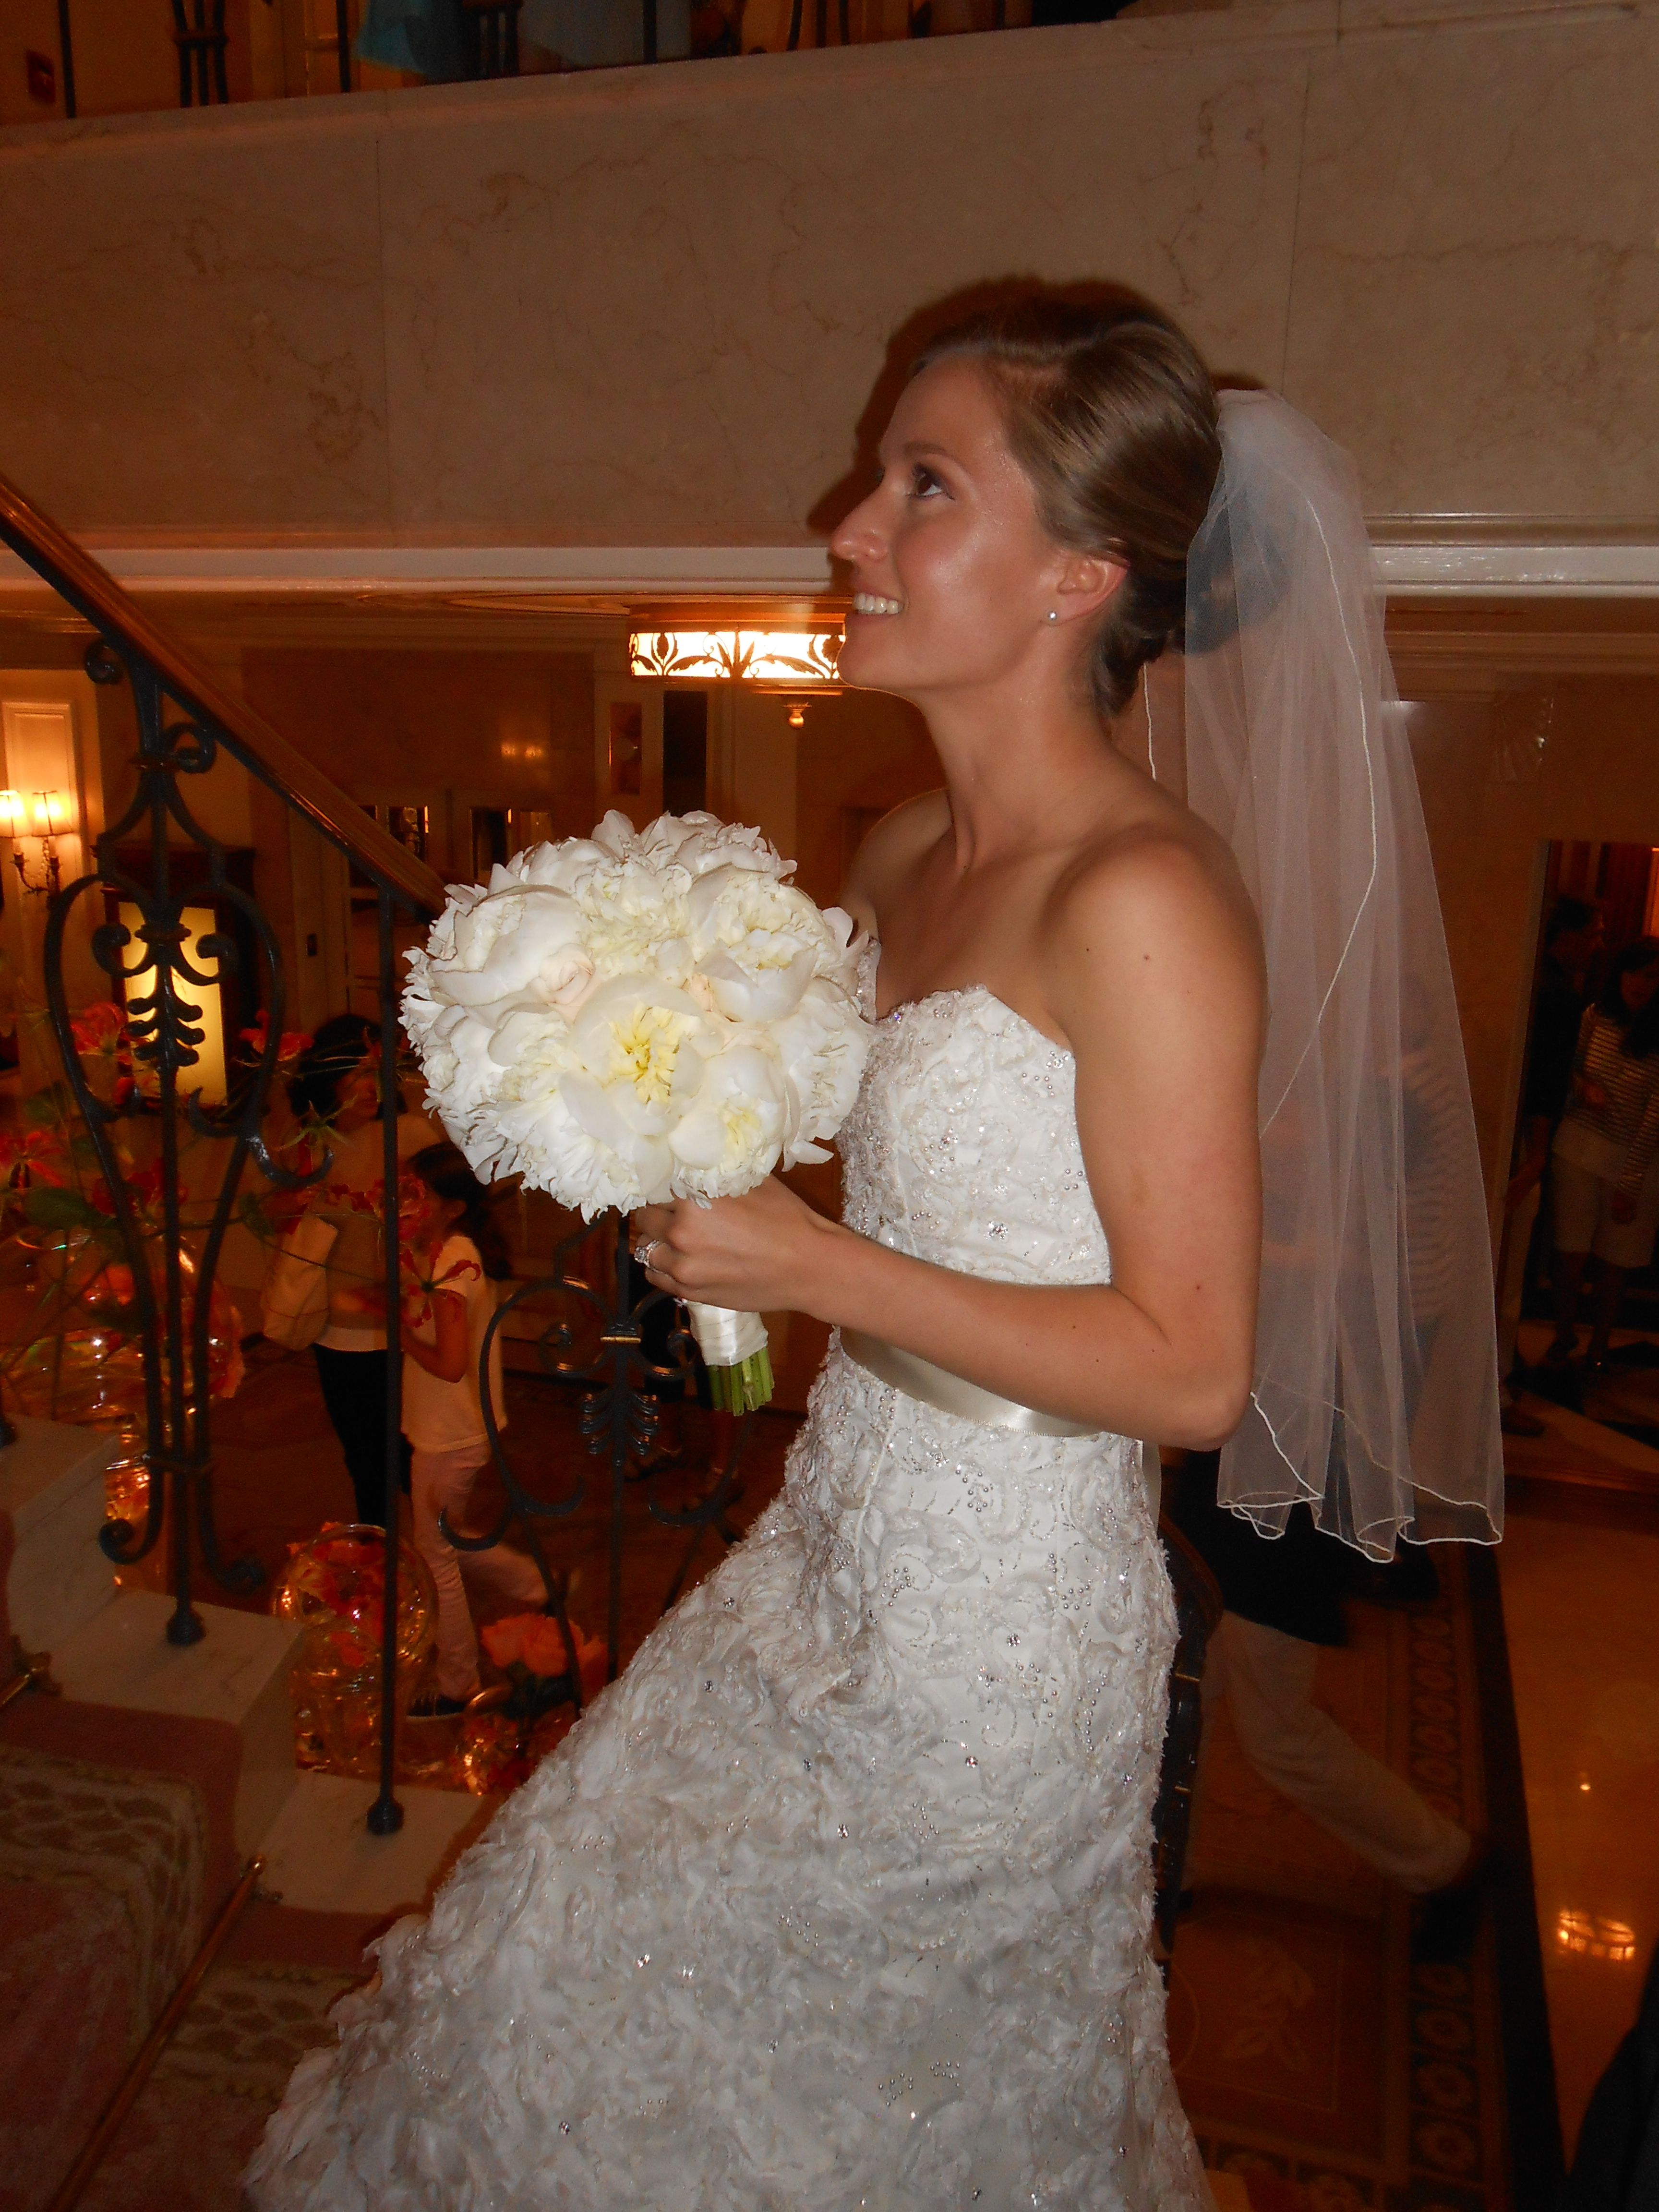 #Bride, Emily, happily #married